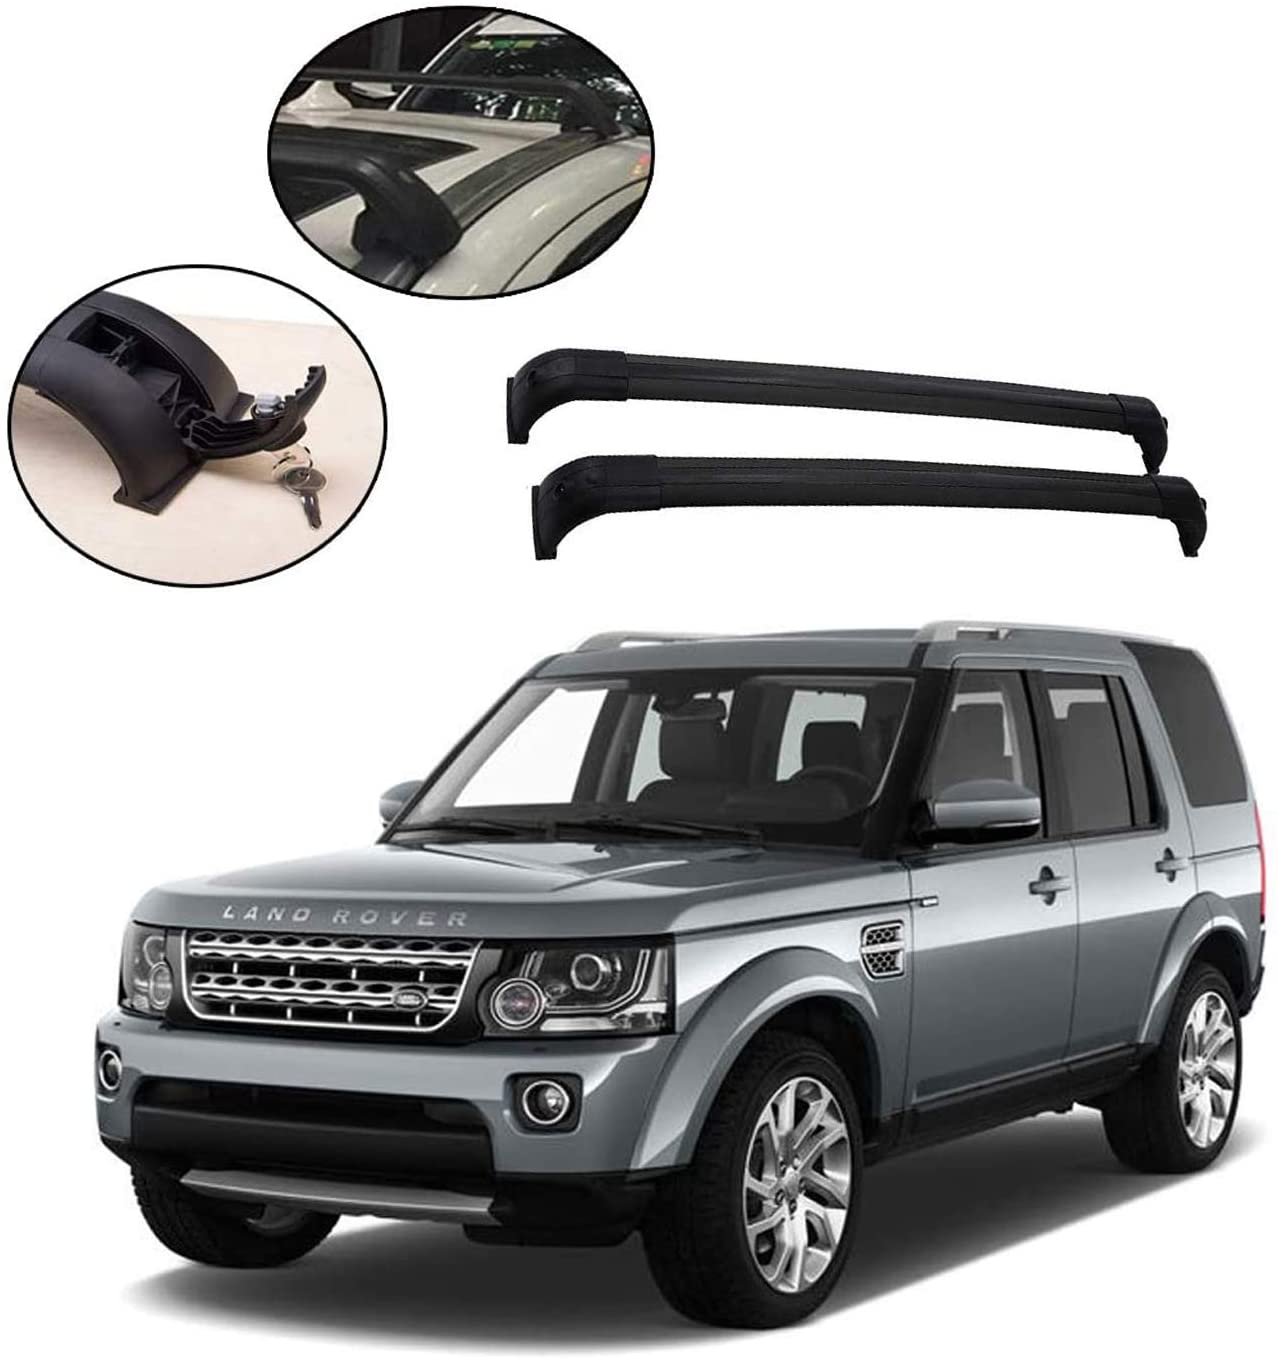 roof rack crossbars fits land rover discovery 4 lr4 2013 2016 with lockable aluminum roof rails cross bars black